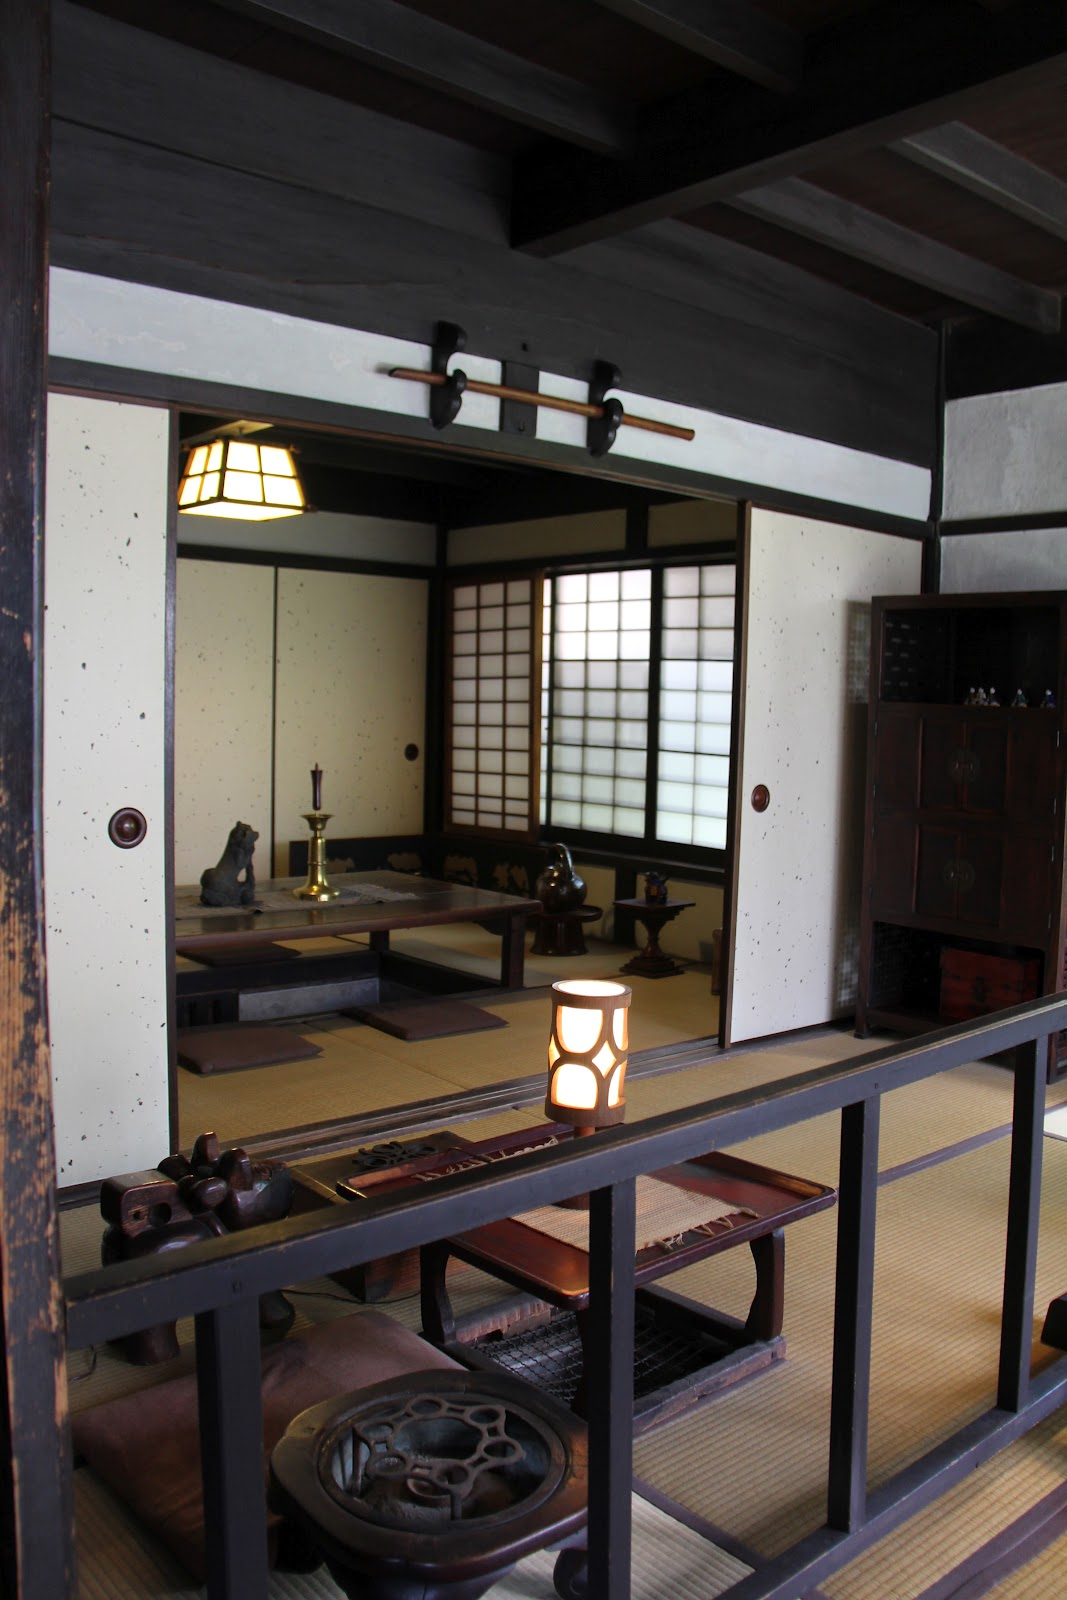 Eatspeak kawai kanjiro 39 s house kyoto for Asian houses photos